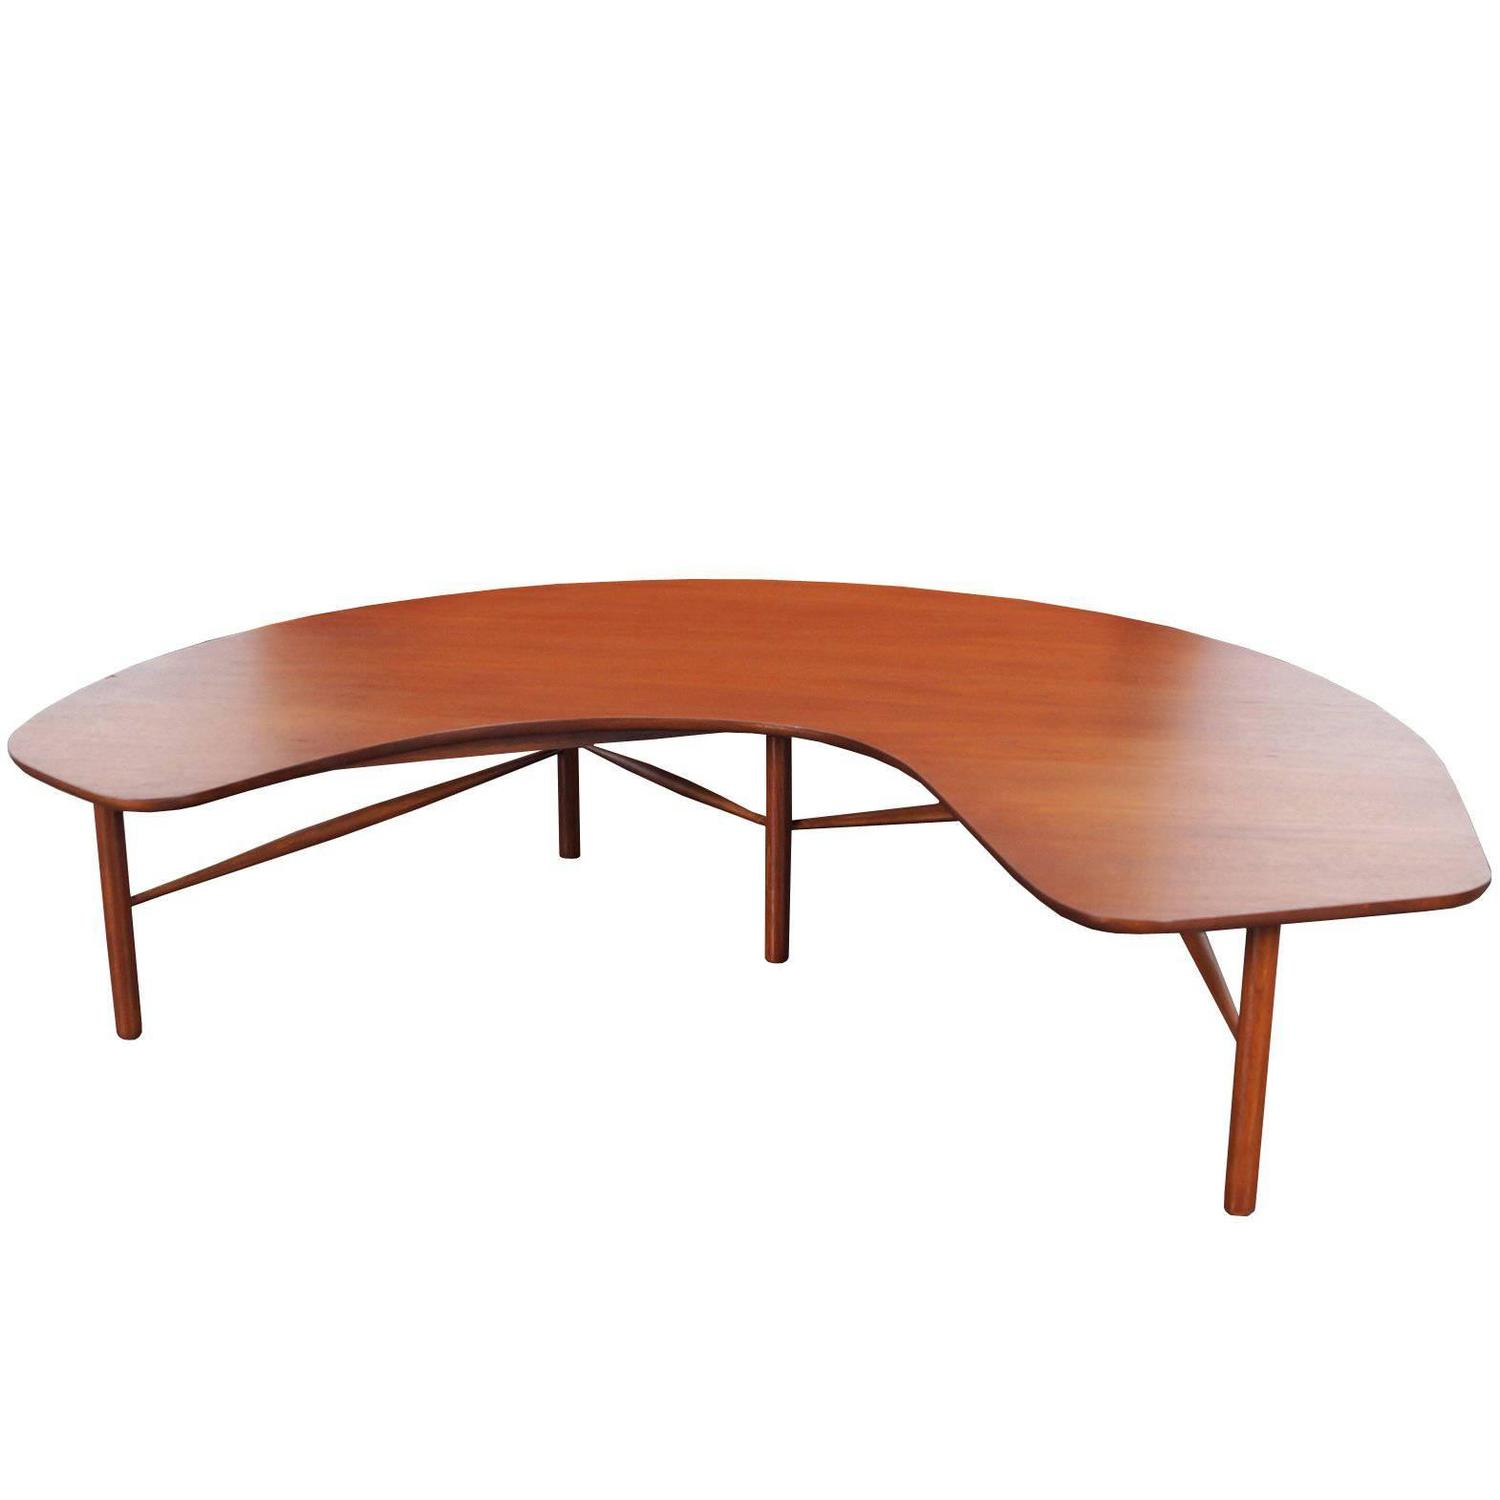 "Vintage ""Crescent Moon"" Coffee Table by Greta M Grossman at 1stdibs"